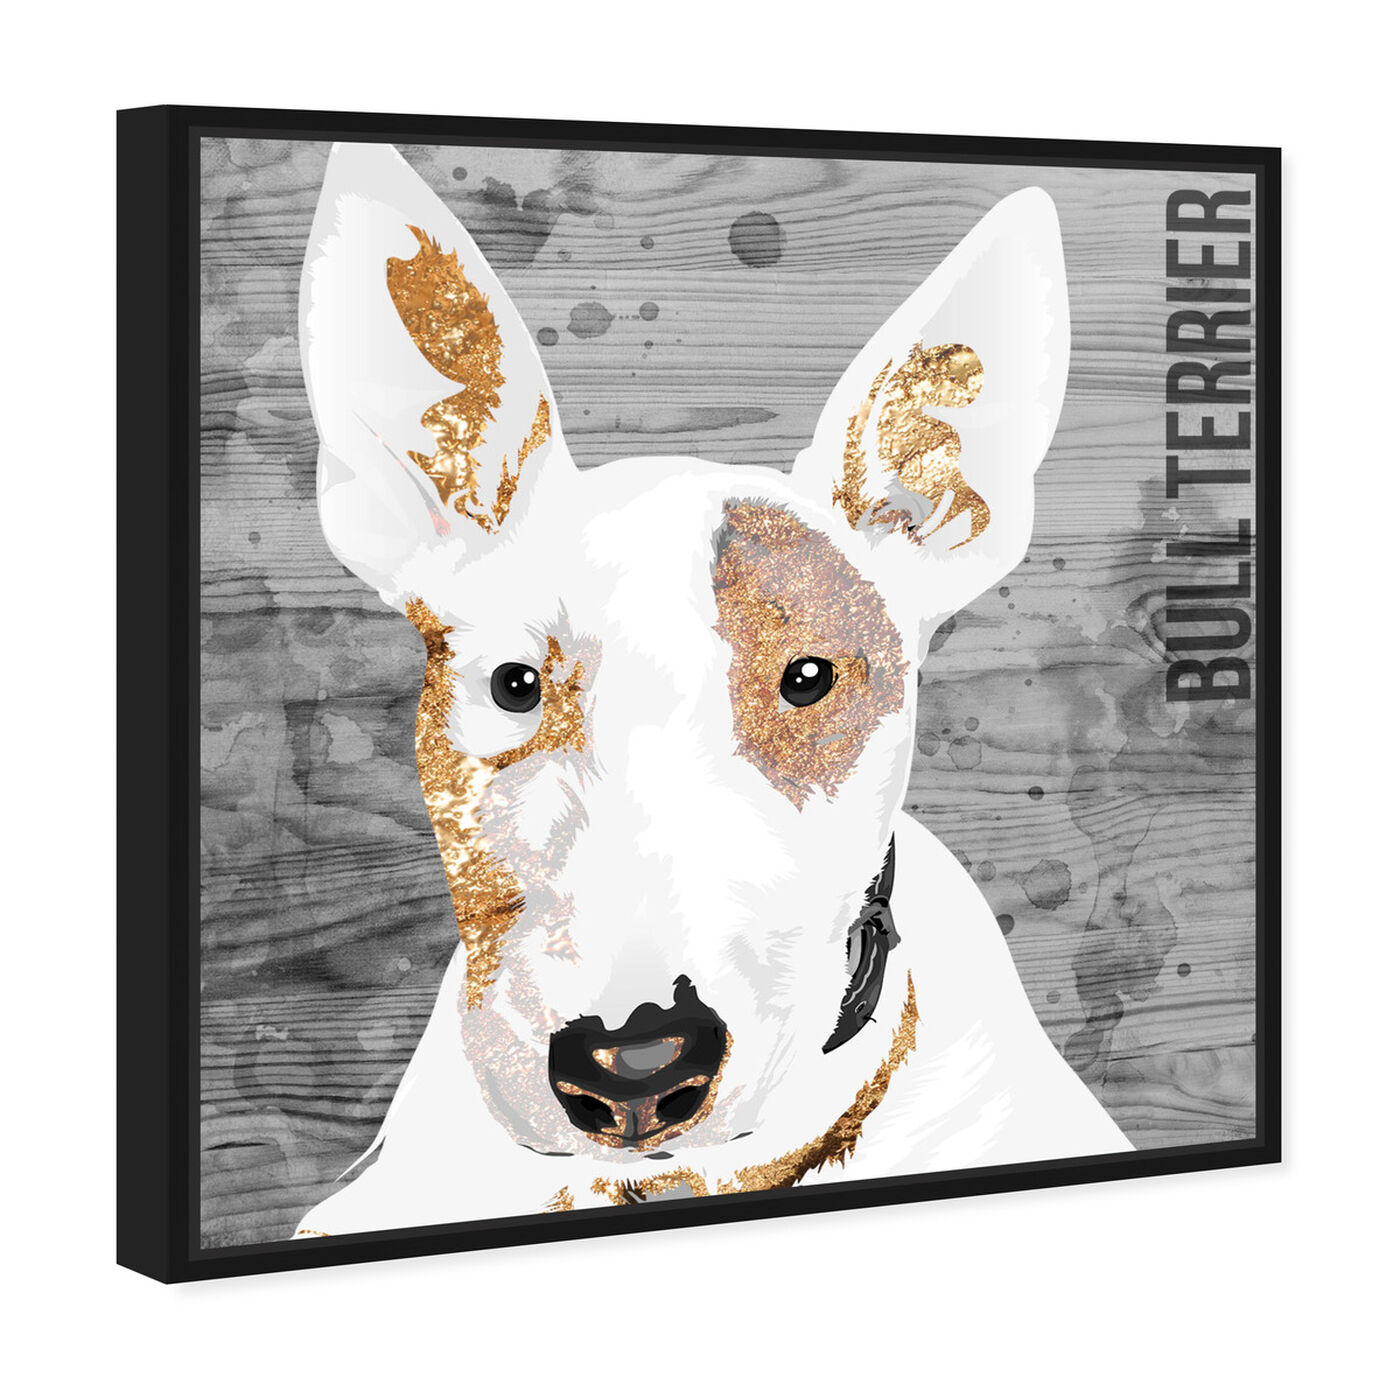 Angled view of Love My Bull Terrier featuring animals and dogs and puppies art.